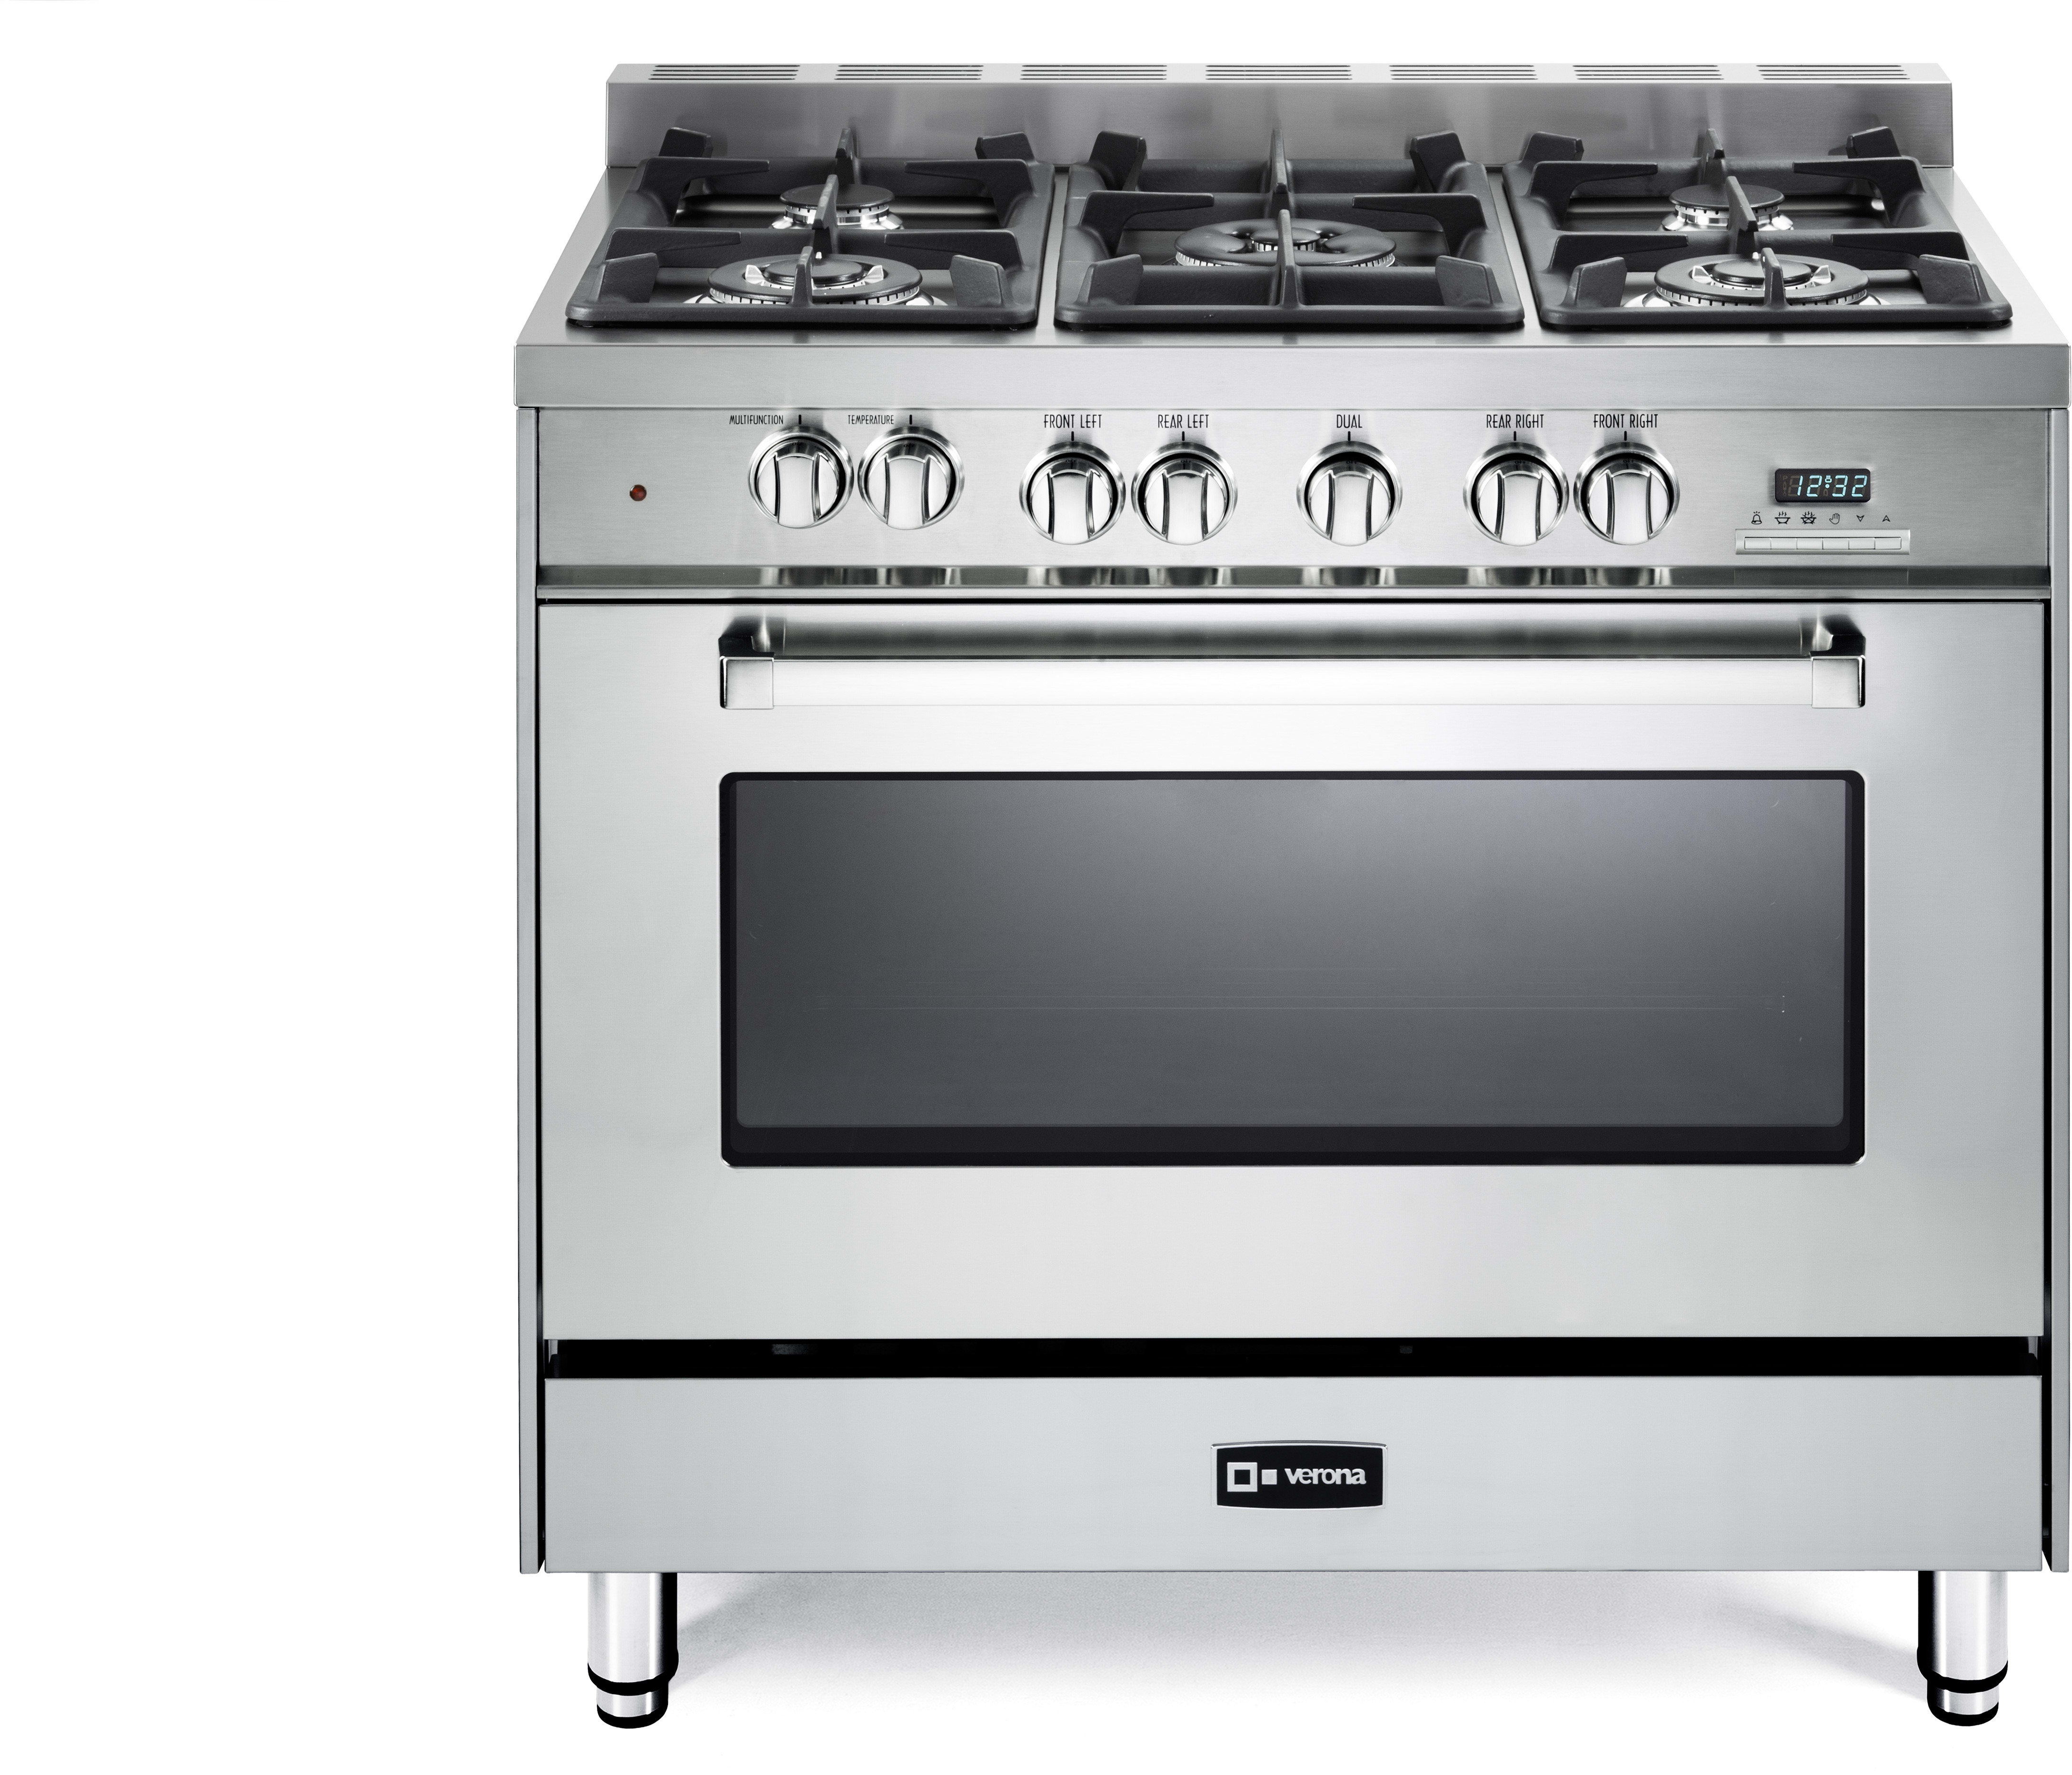 Verona Vefsge365nss 36 Inch Pro Style Dual Fuel Range With